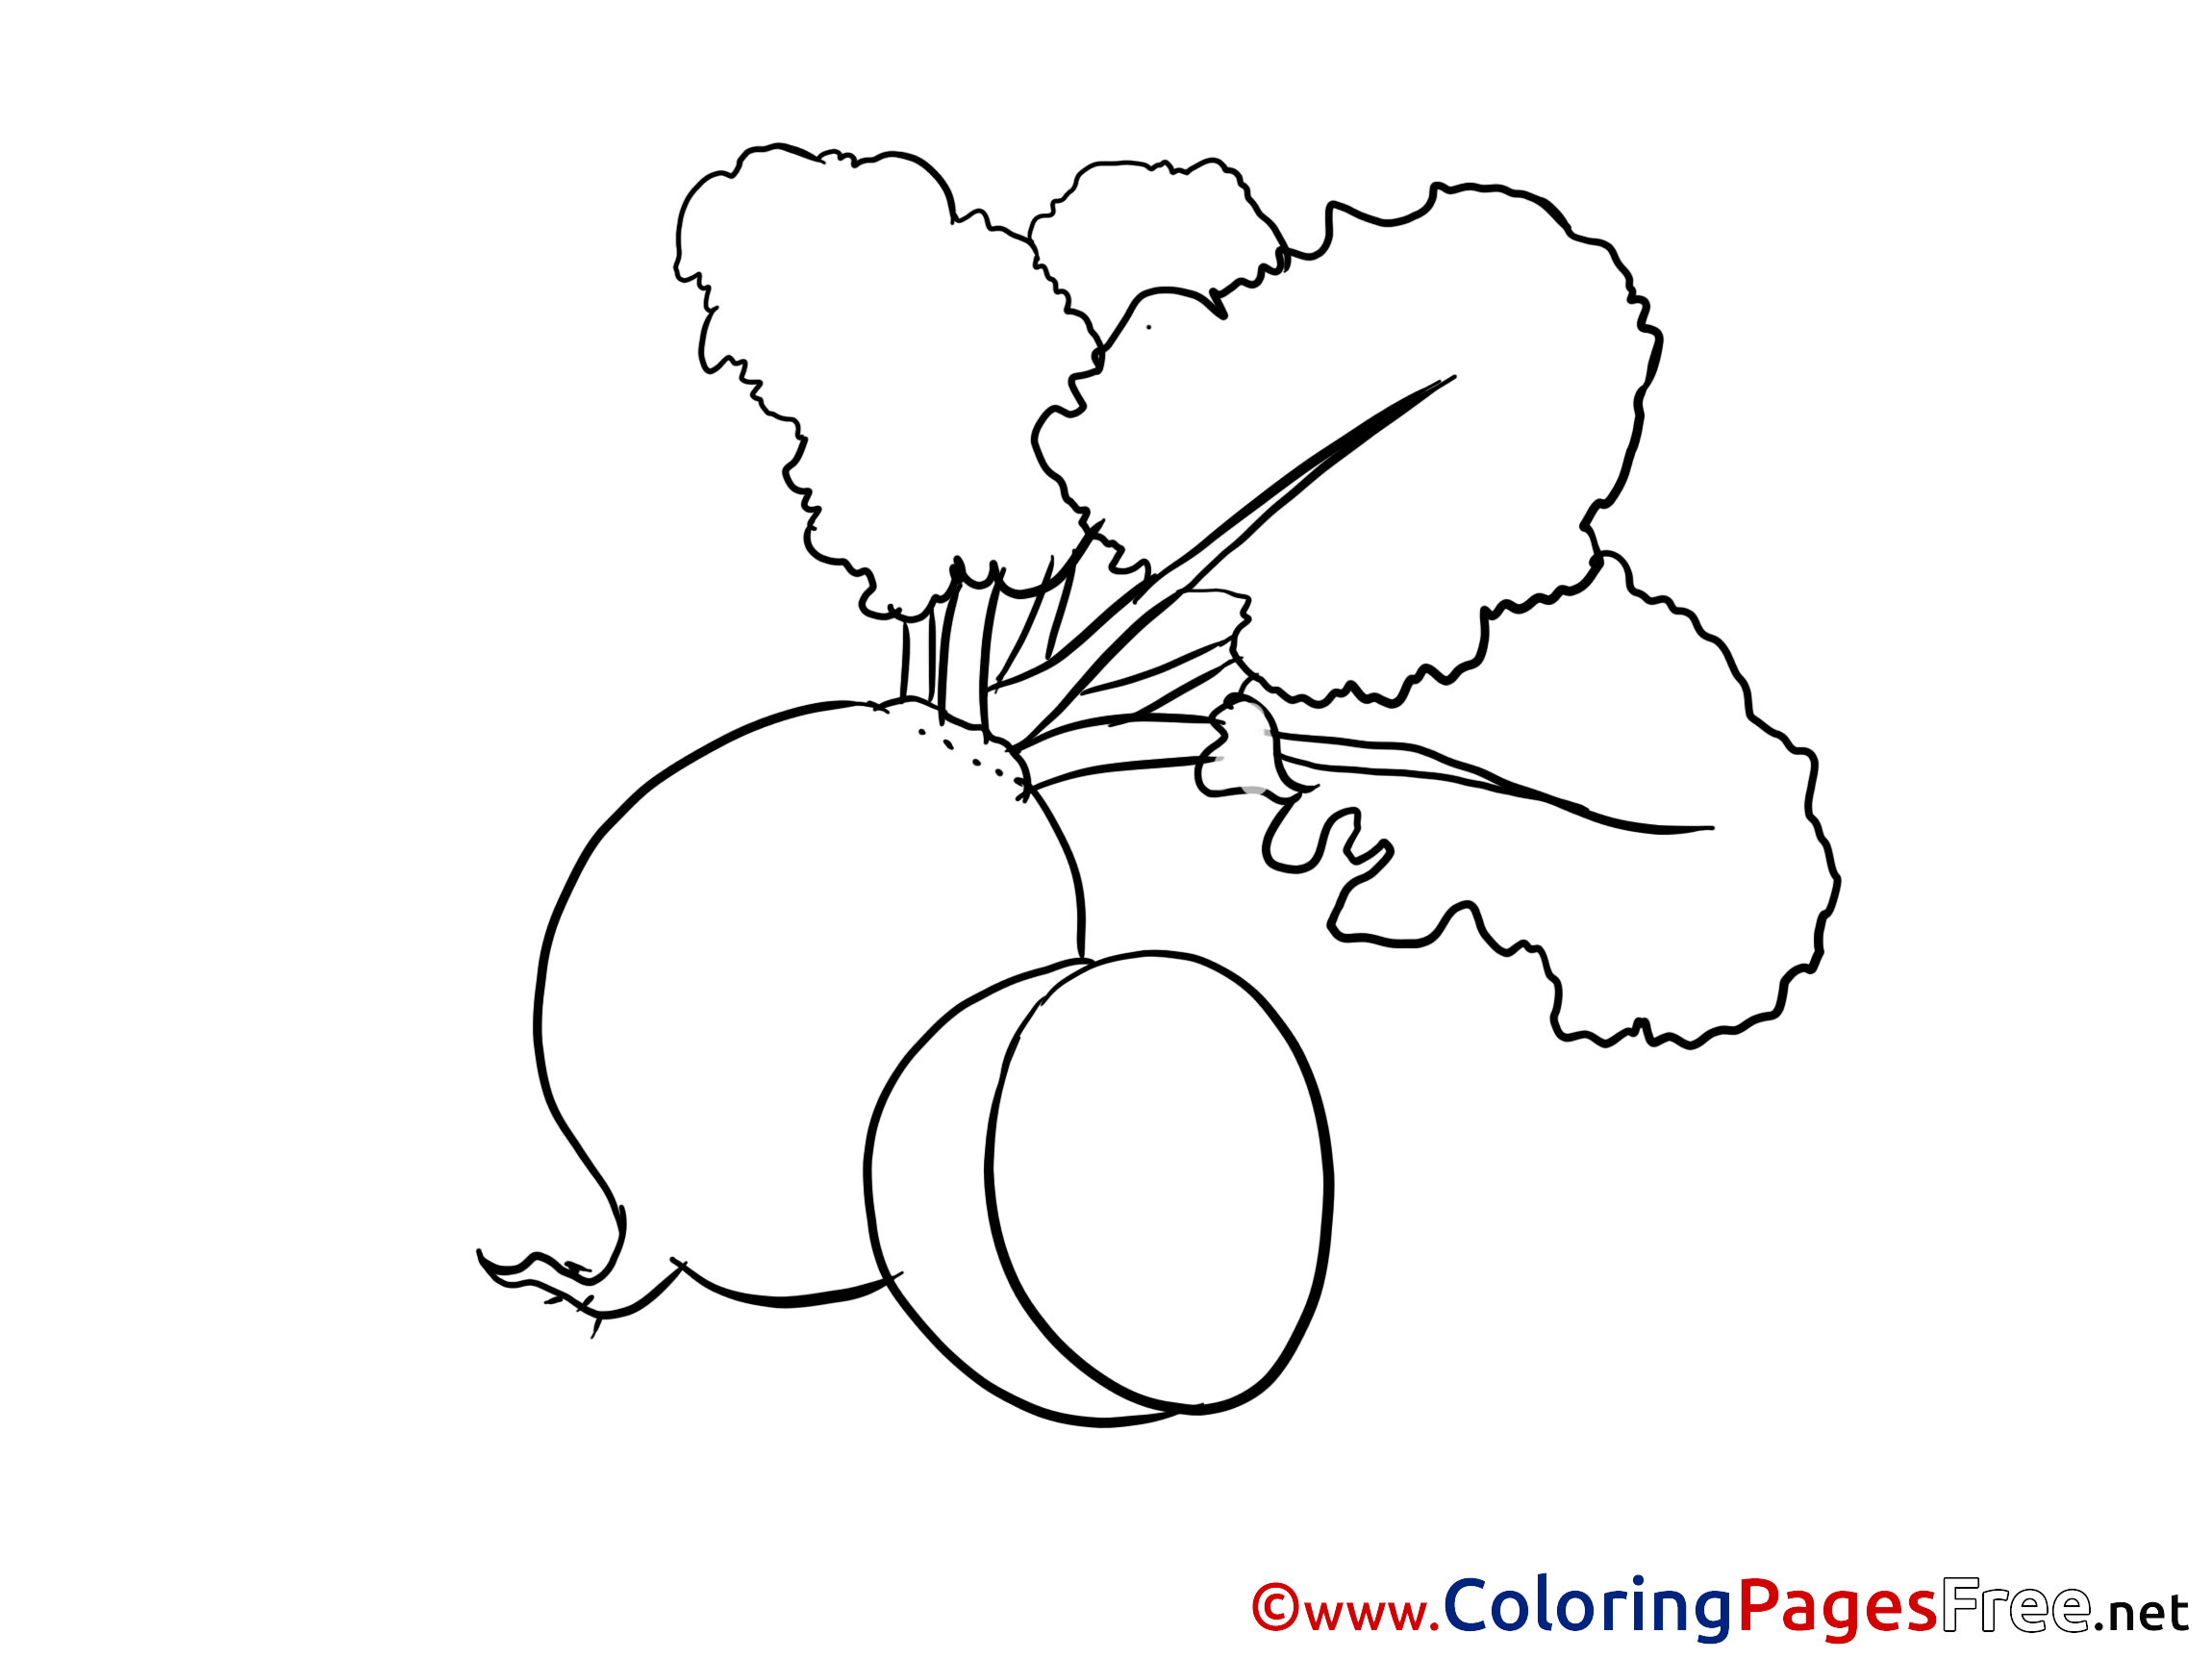 radish download printable coloring pages